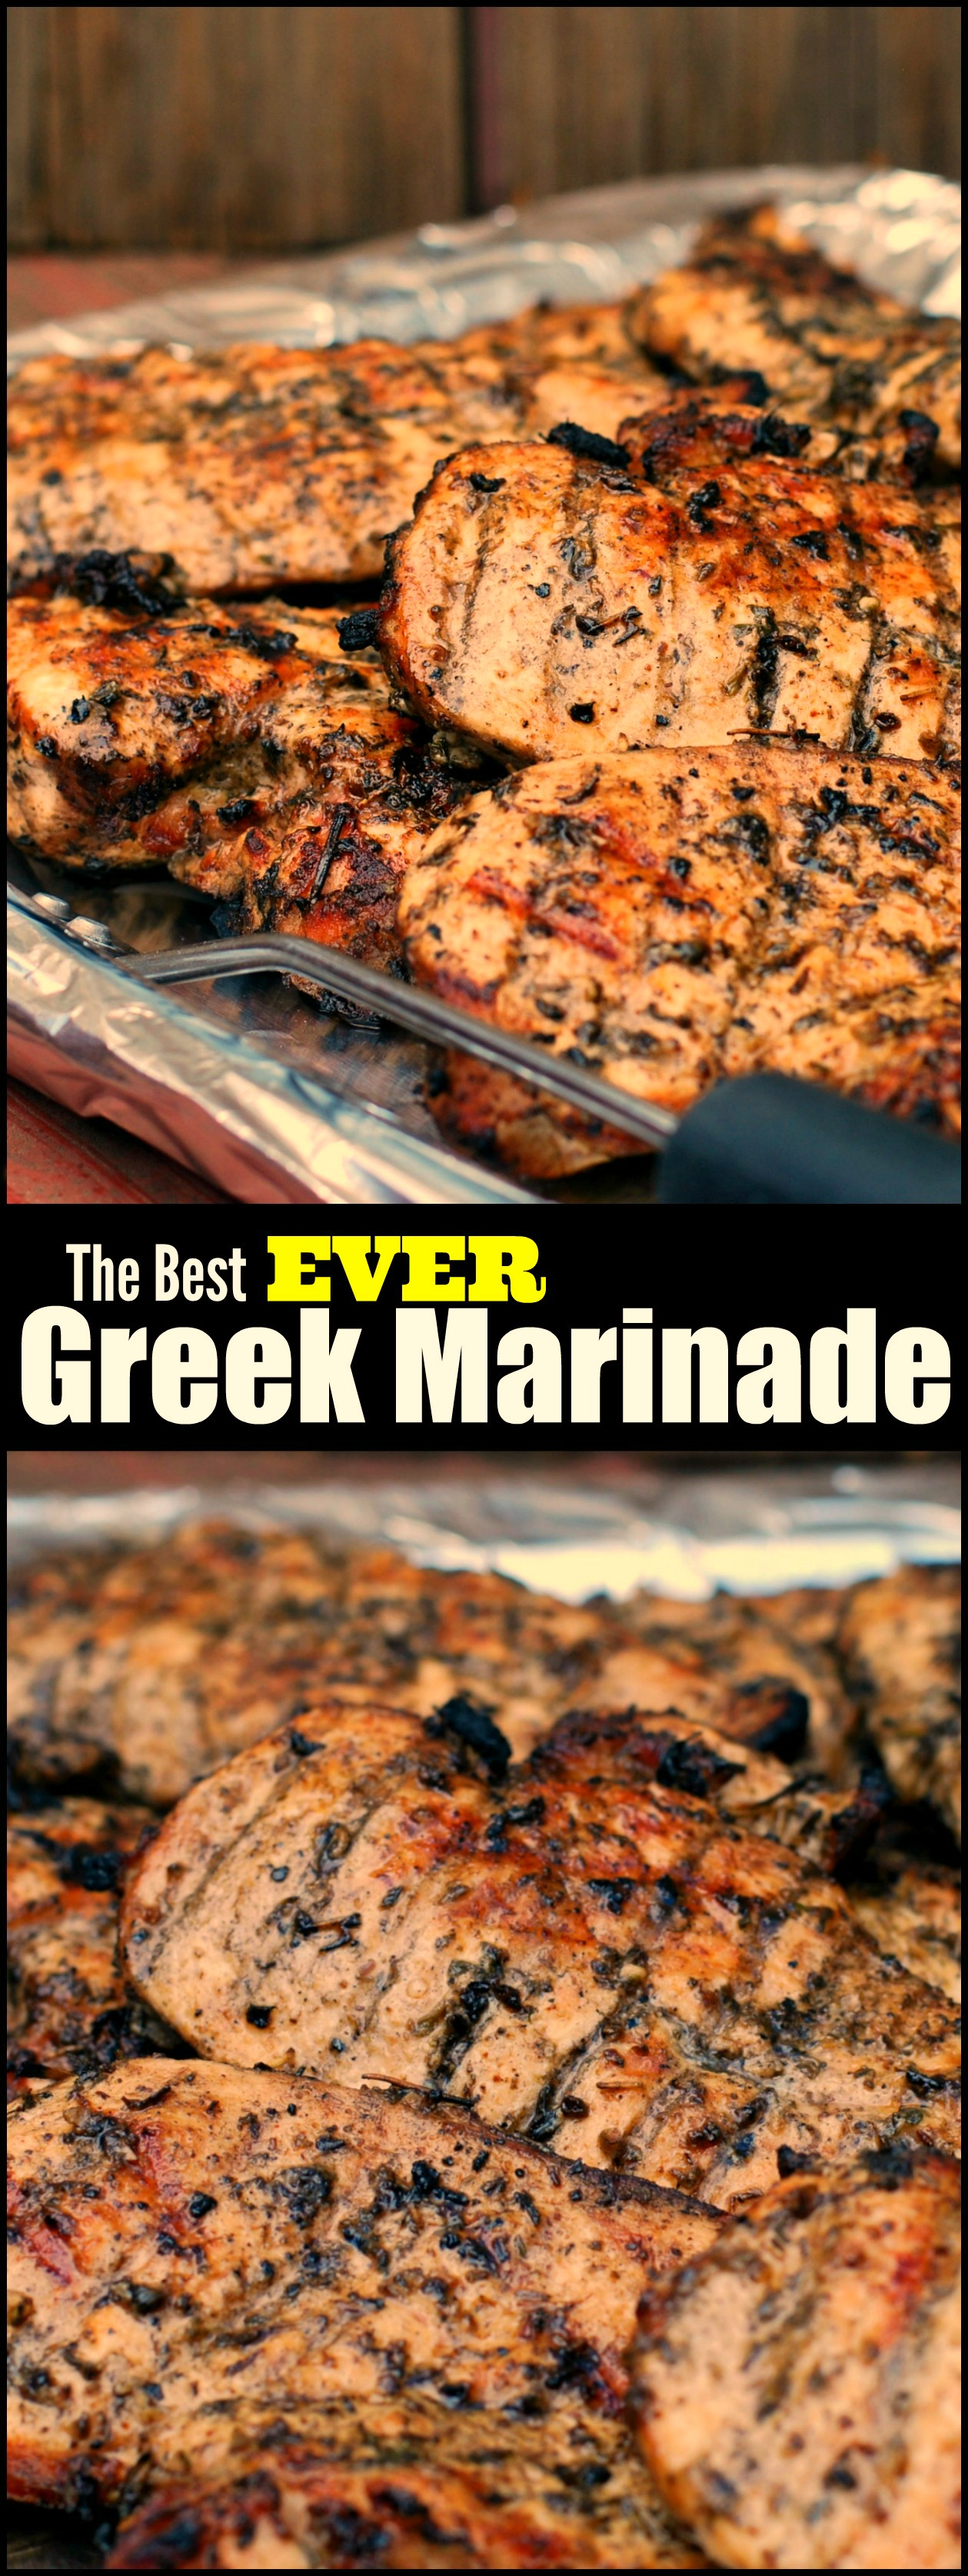 The best greek marinade for chicken steak pork aunt bees recipes the best ever greek marinade aunt bees recipes forumfinder Image collections